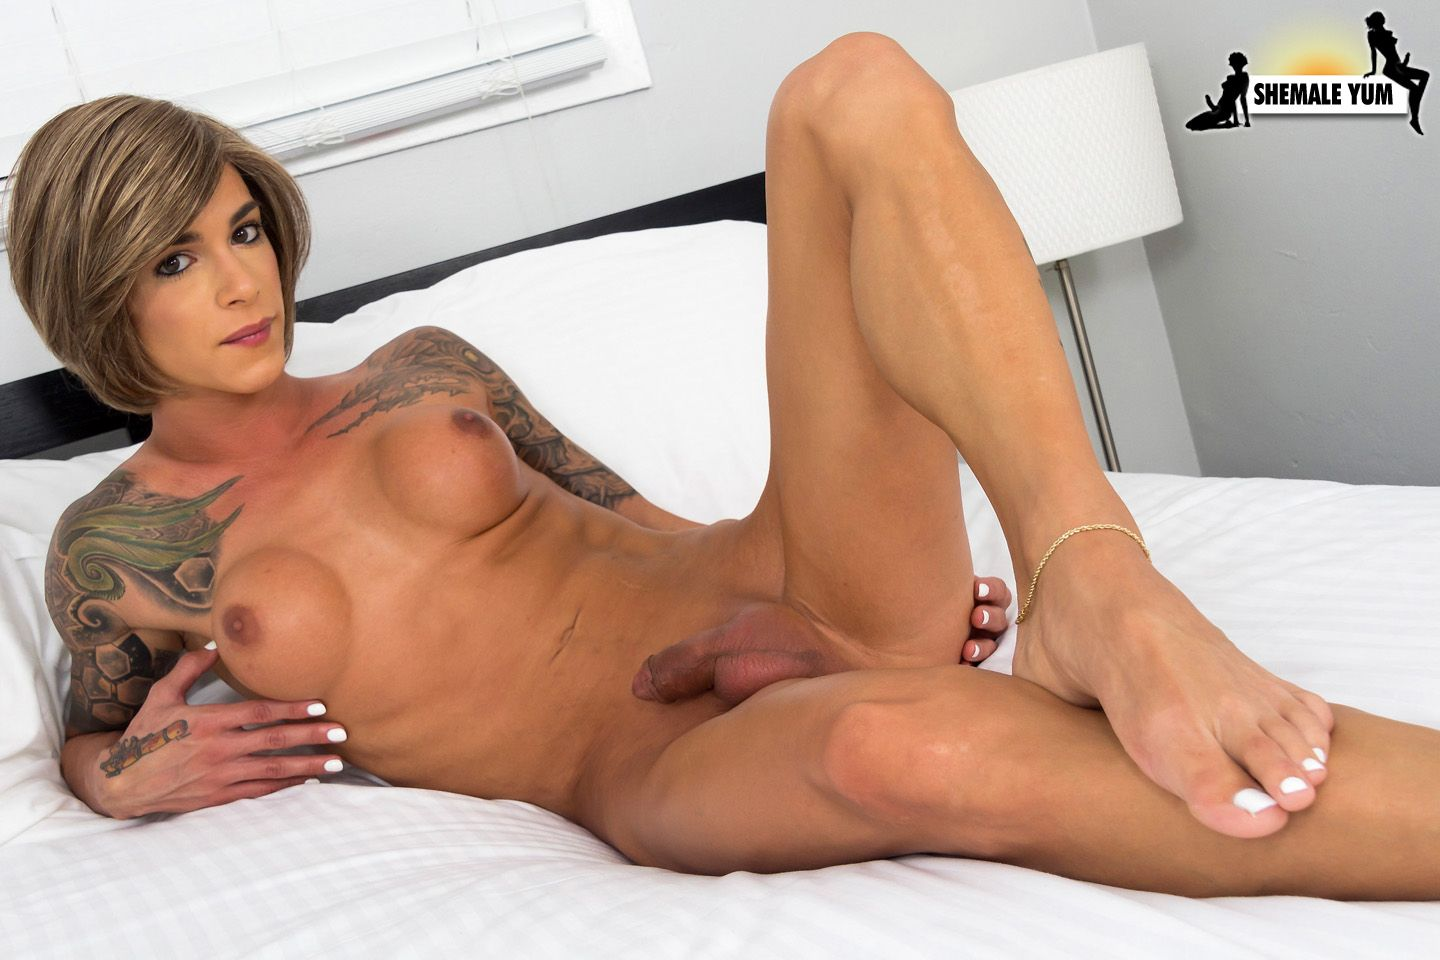 Black shemale beauty inserts sex toy in tight anal and jerks shemale sex